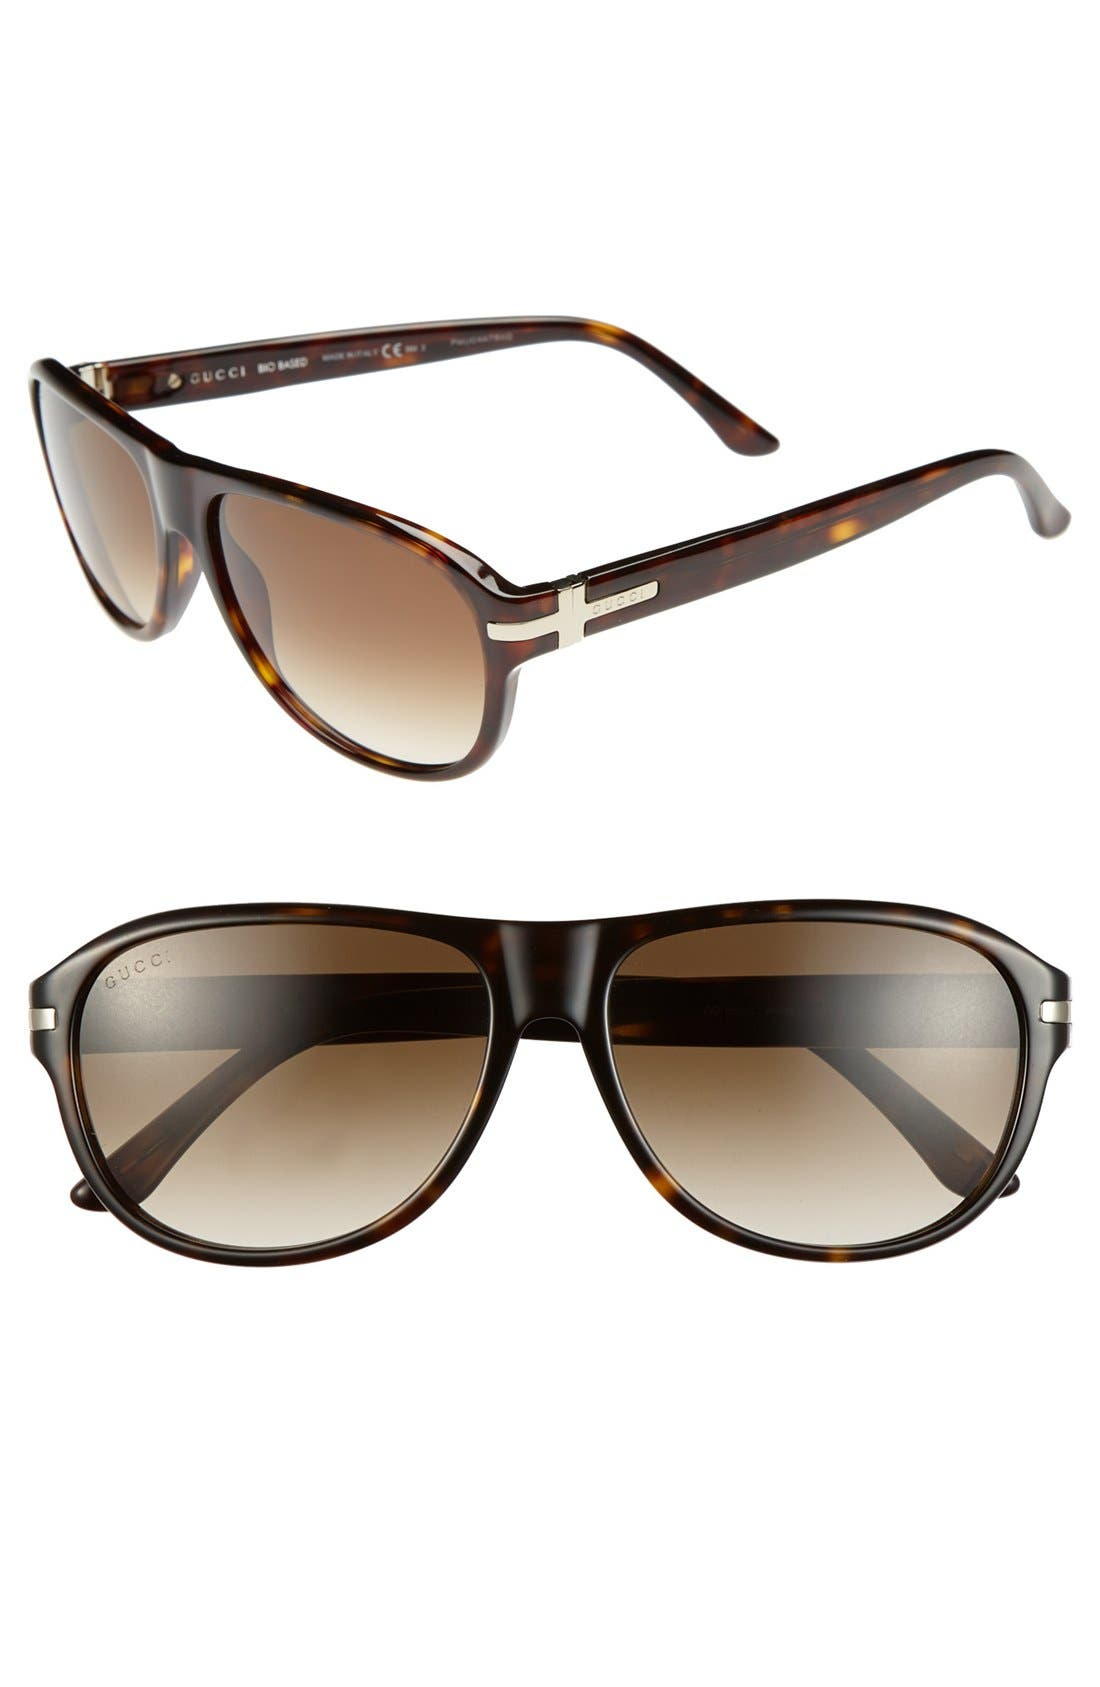 Main Image - Gucci 58mm Sunglasses